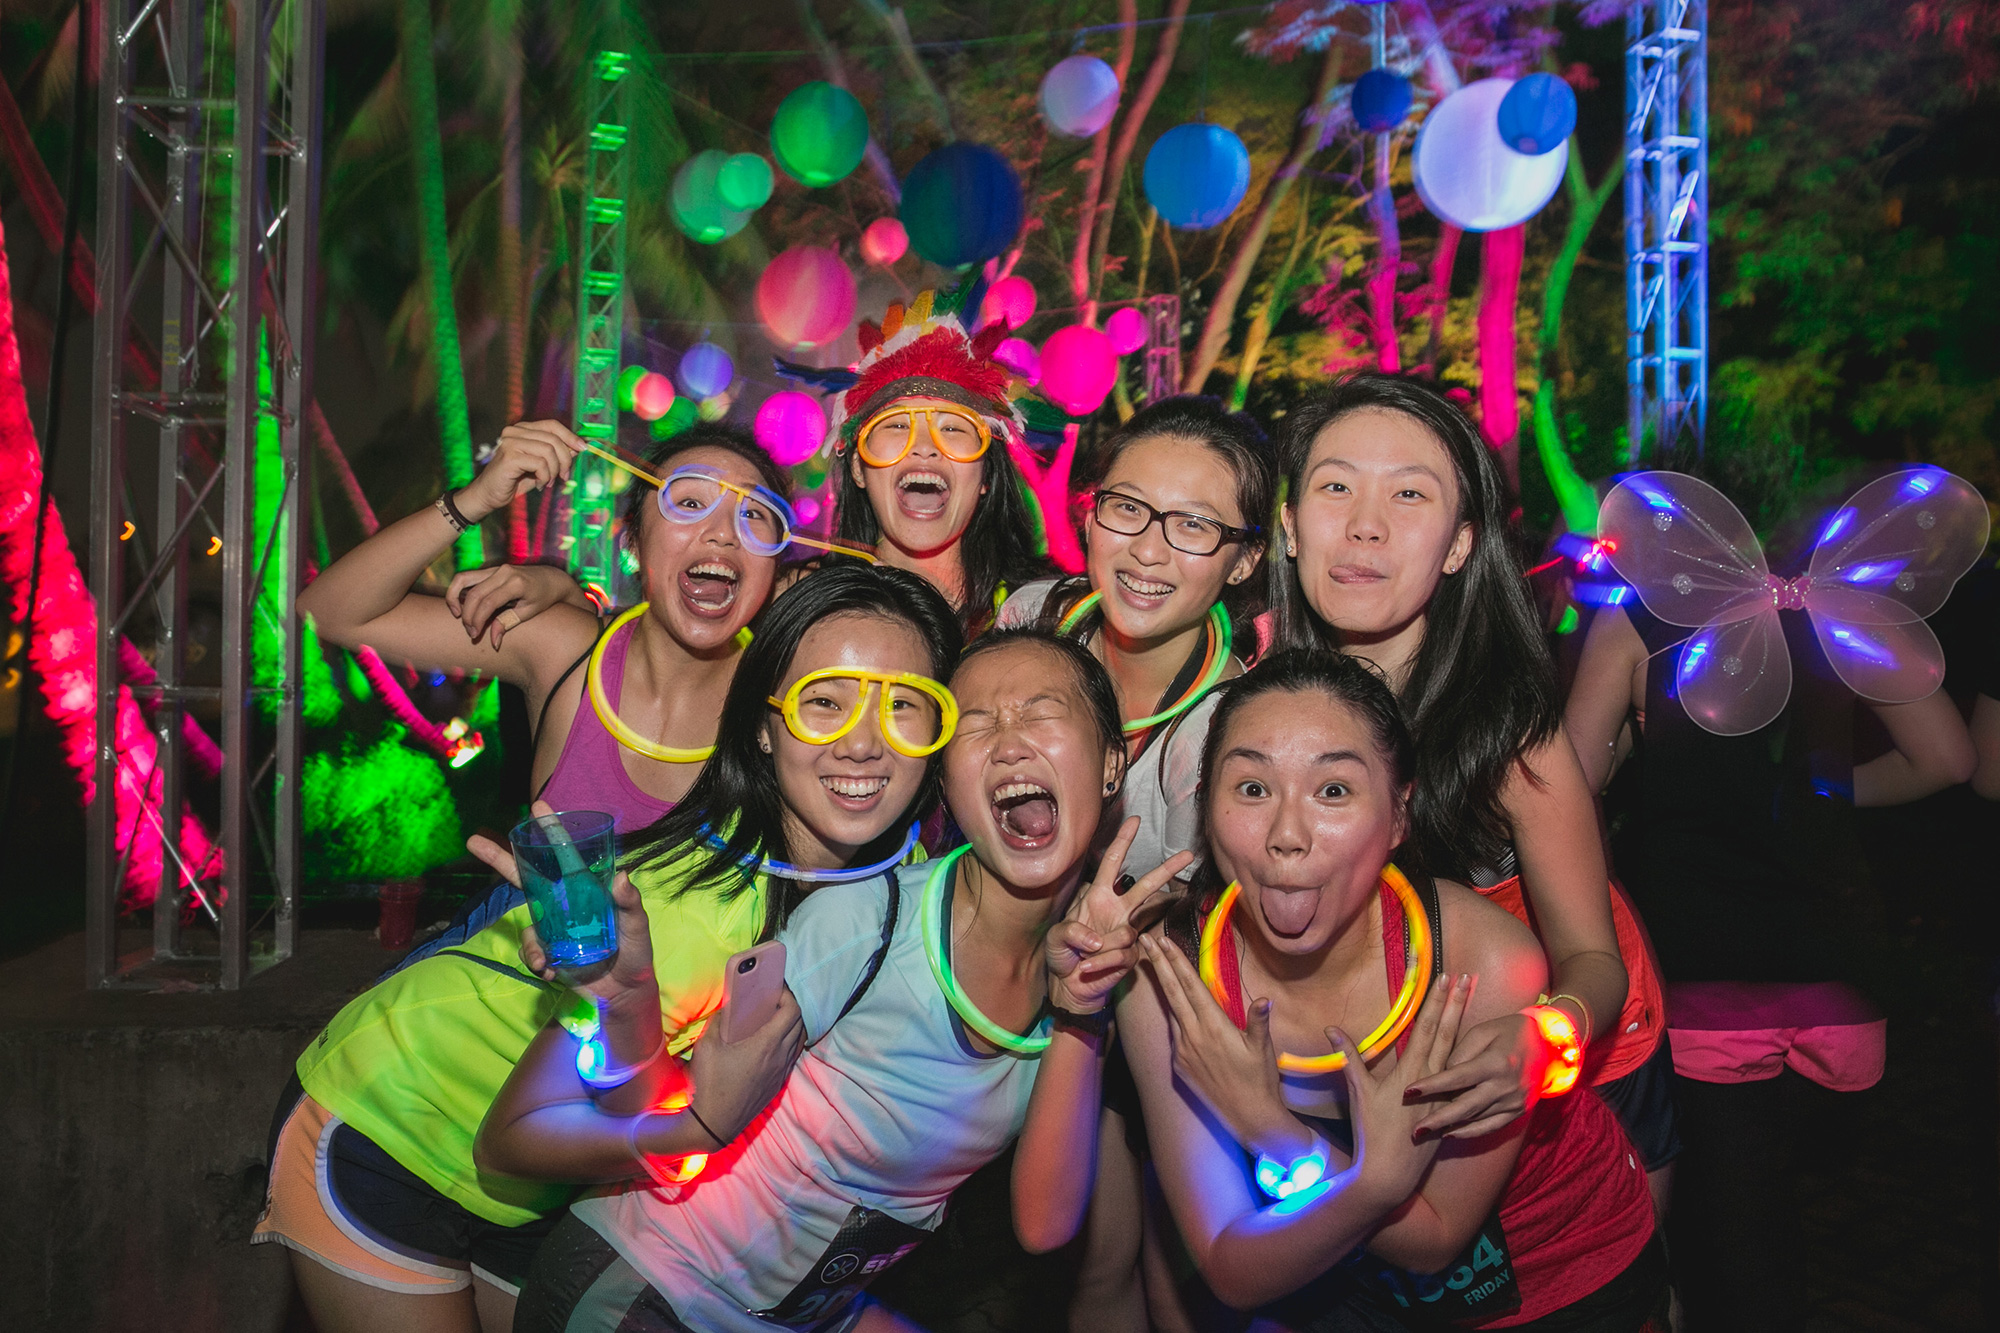 Electric Runners are decked out in their neon attire to enjoy the biggest 5k party in the world